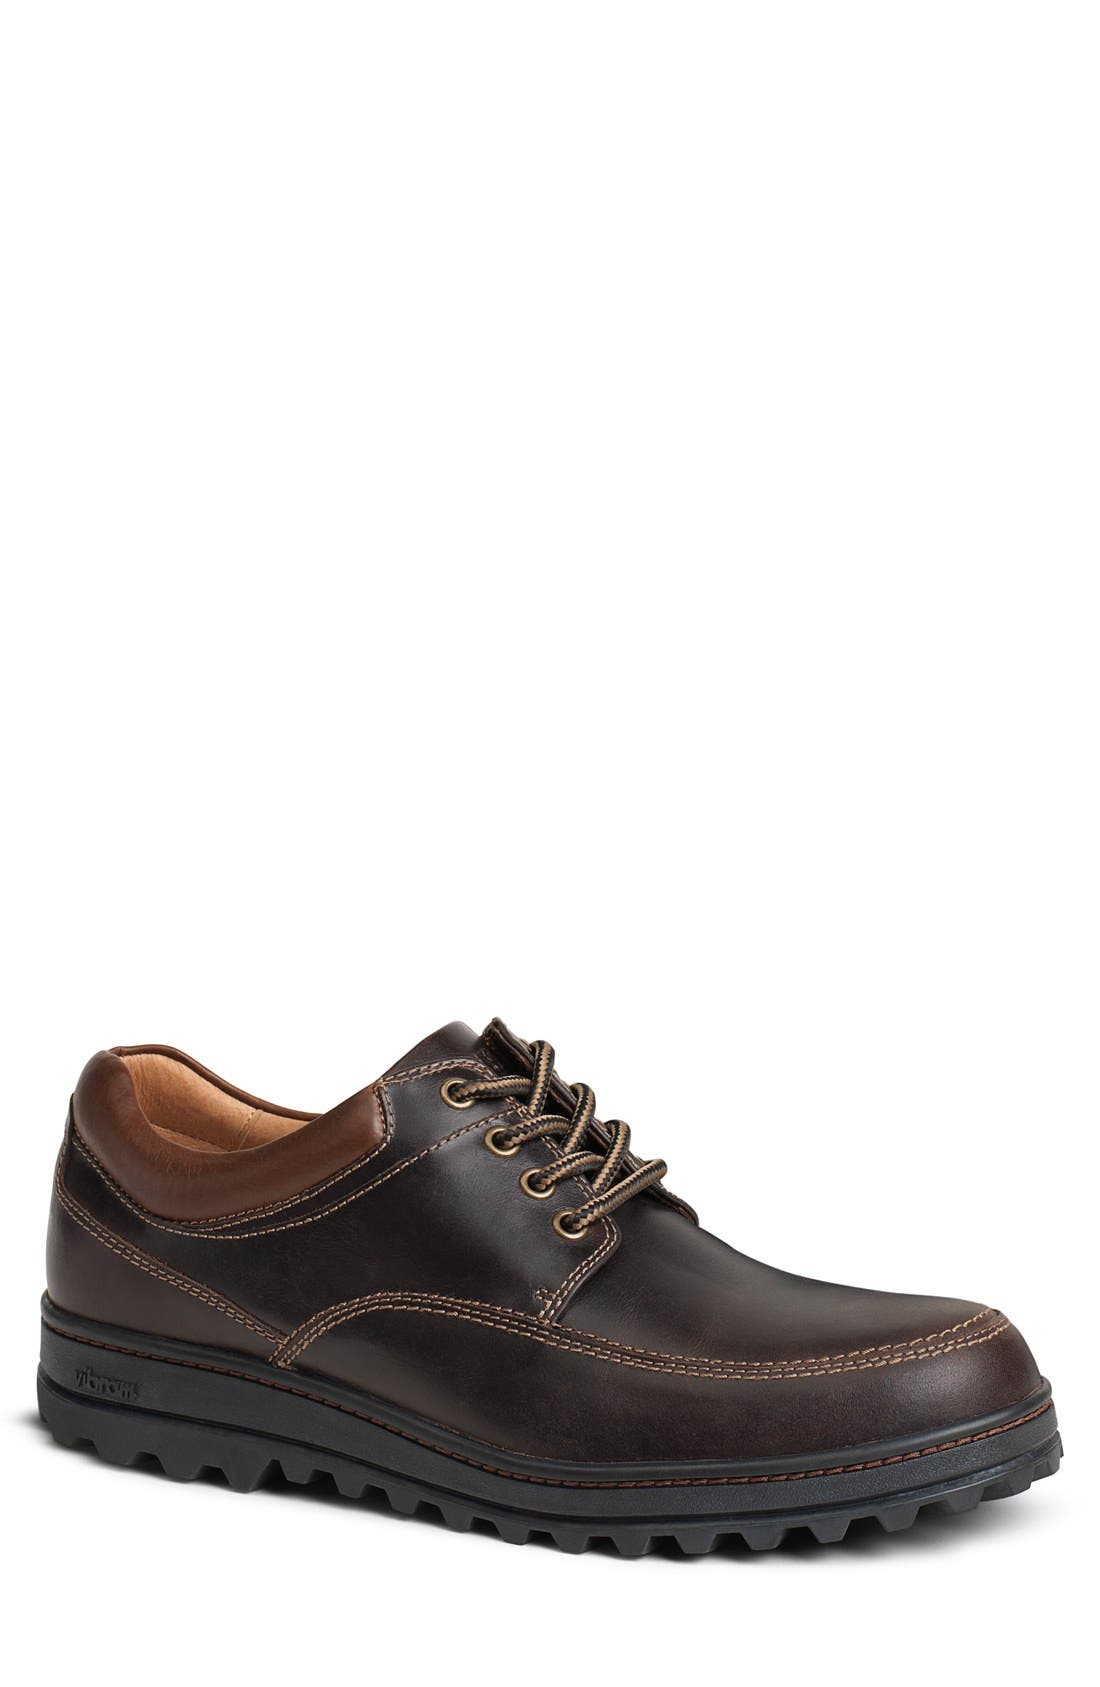 'Westcott' Moc Toe Derby,                         Main,                         color, Bourbon